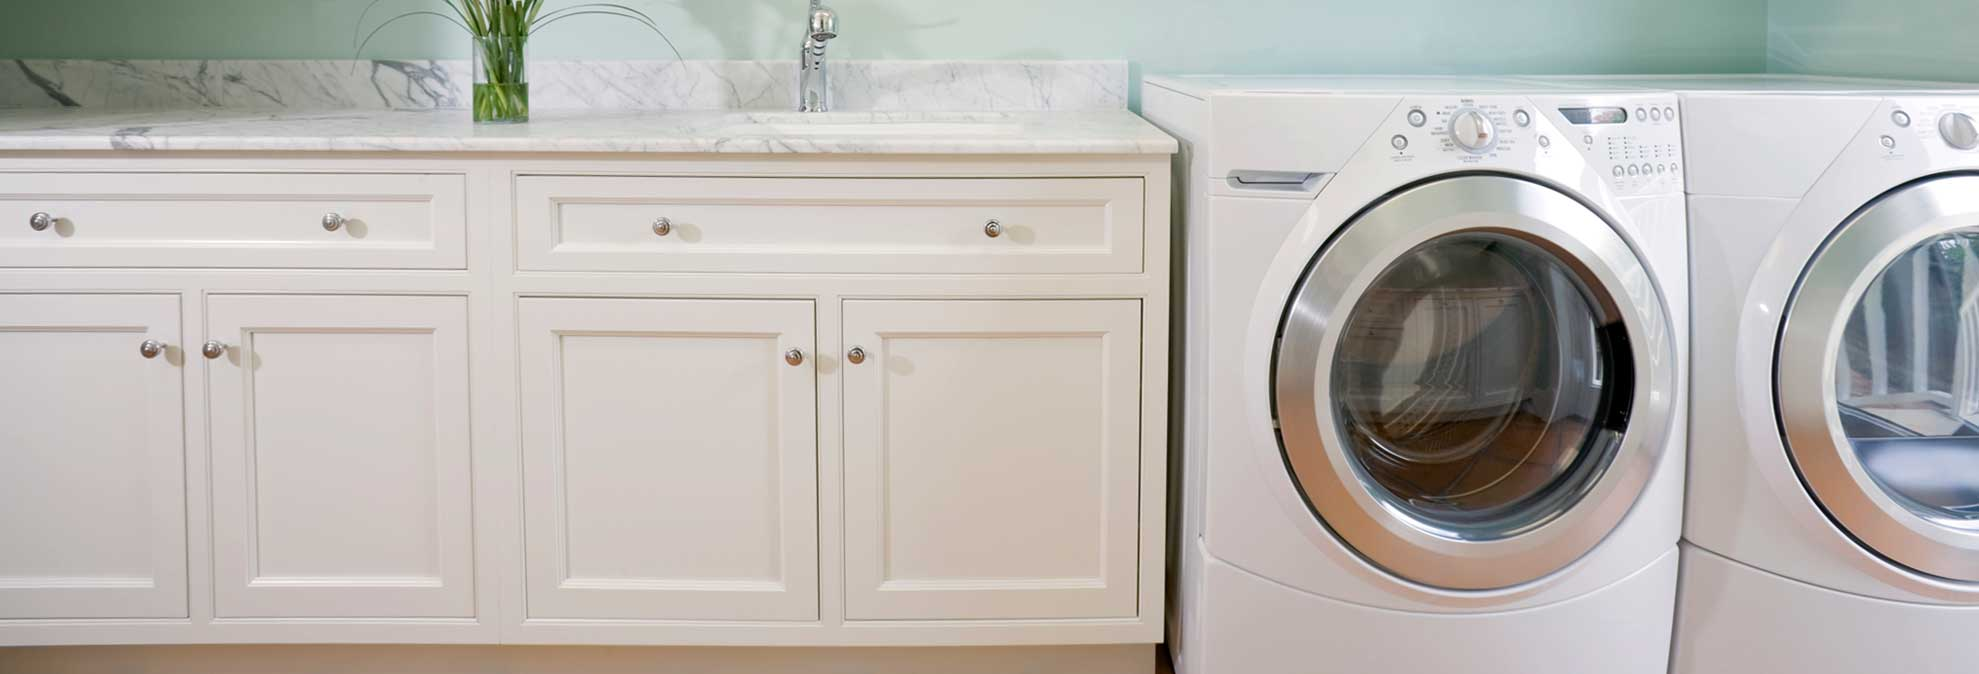 Best Washing Machine Buying Guide Consumer Reports